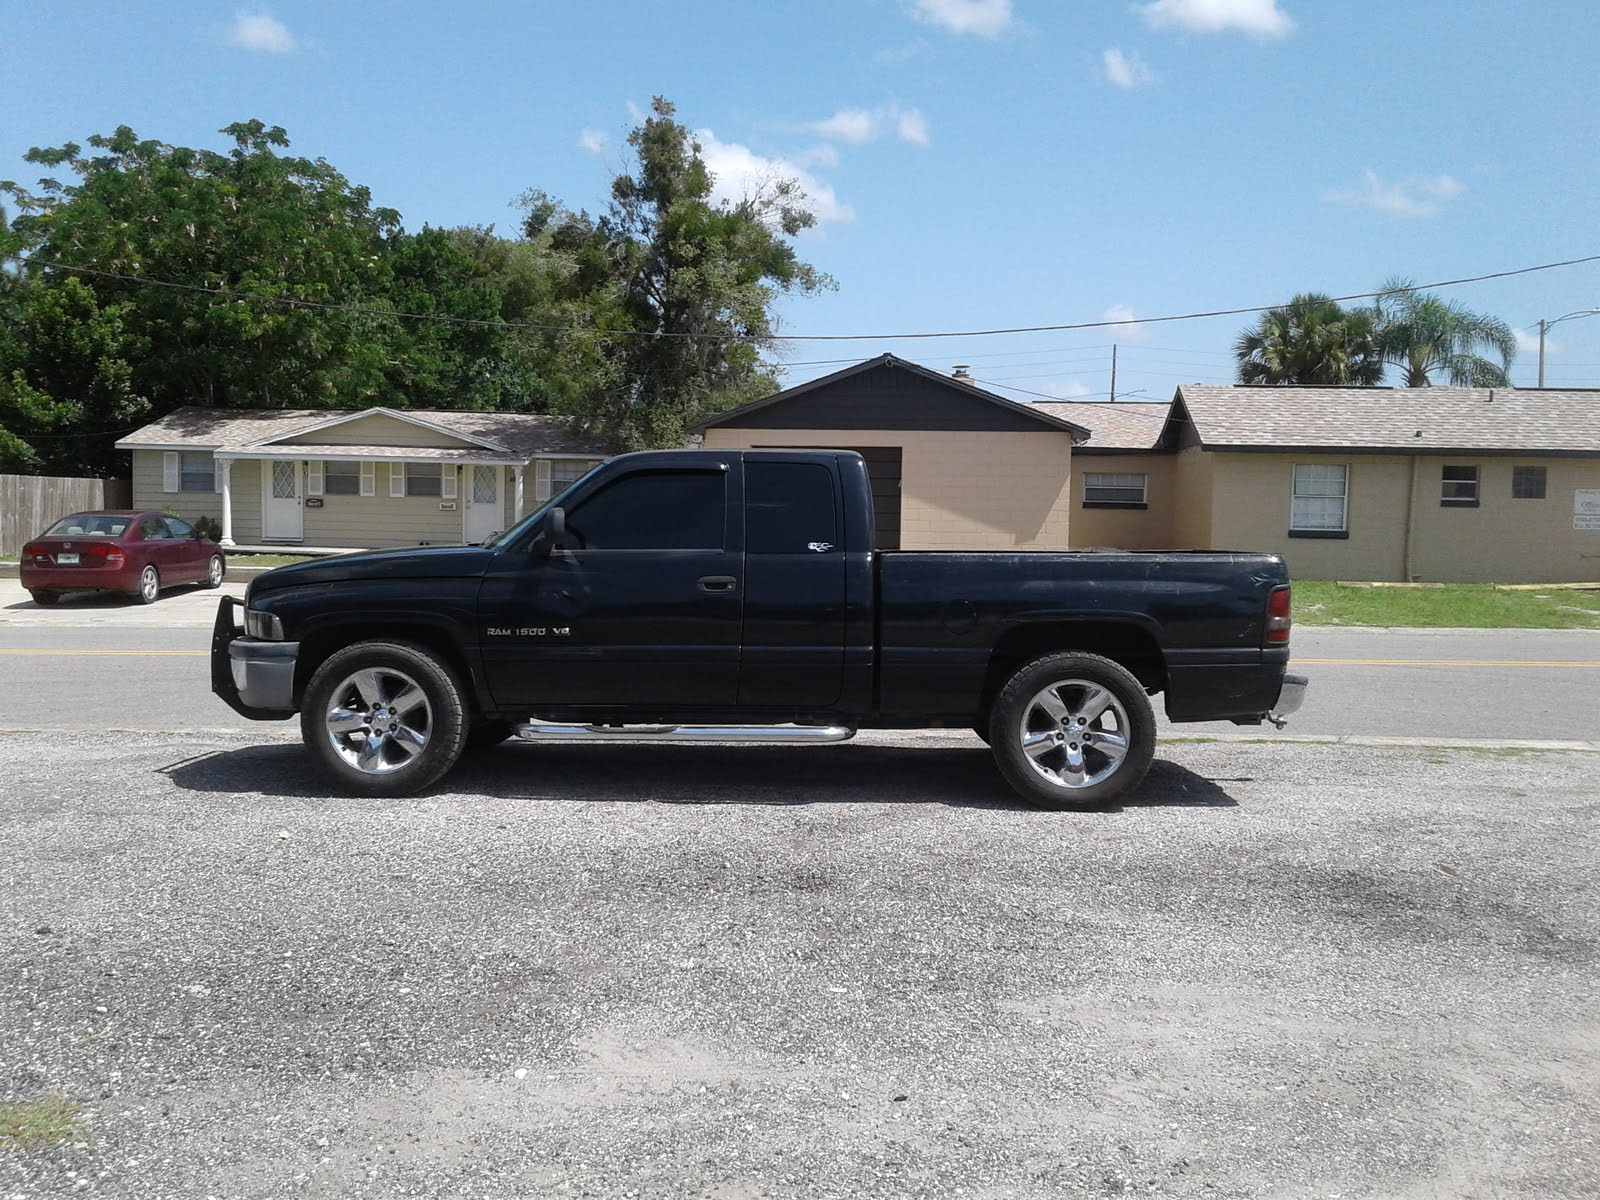 Dodge Ram 1500 Questions Whats The Biggest Tire I Can Put On My 96 Ram 1500 Sport 4x4 Cargurus